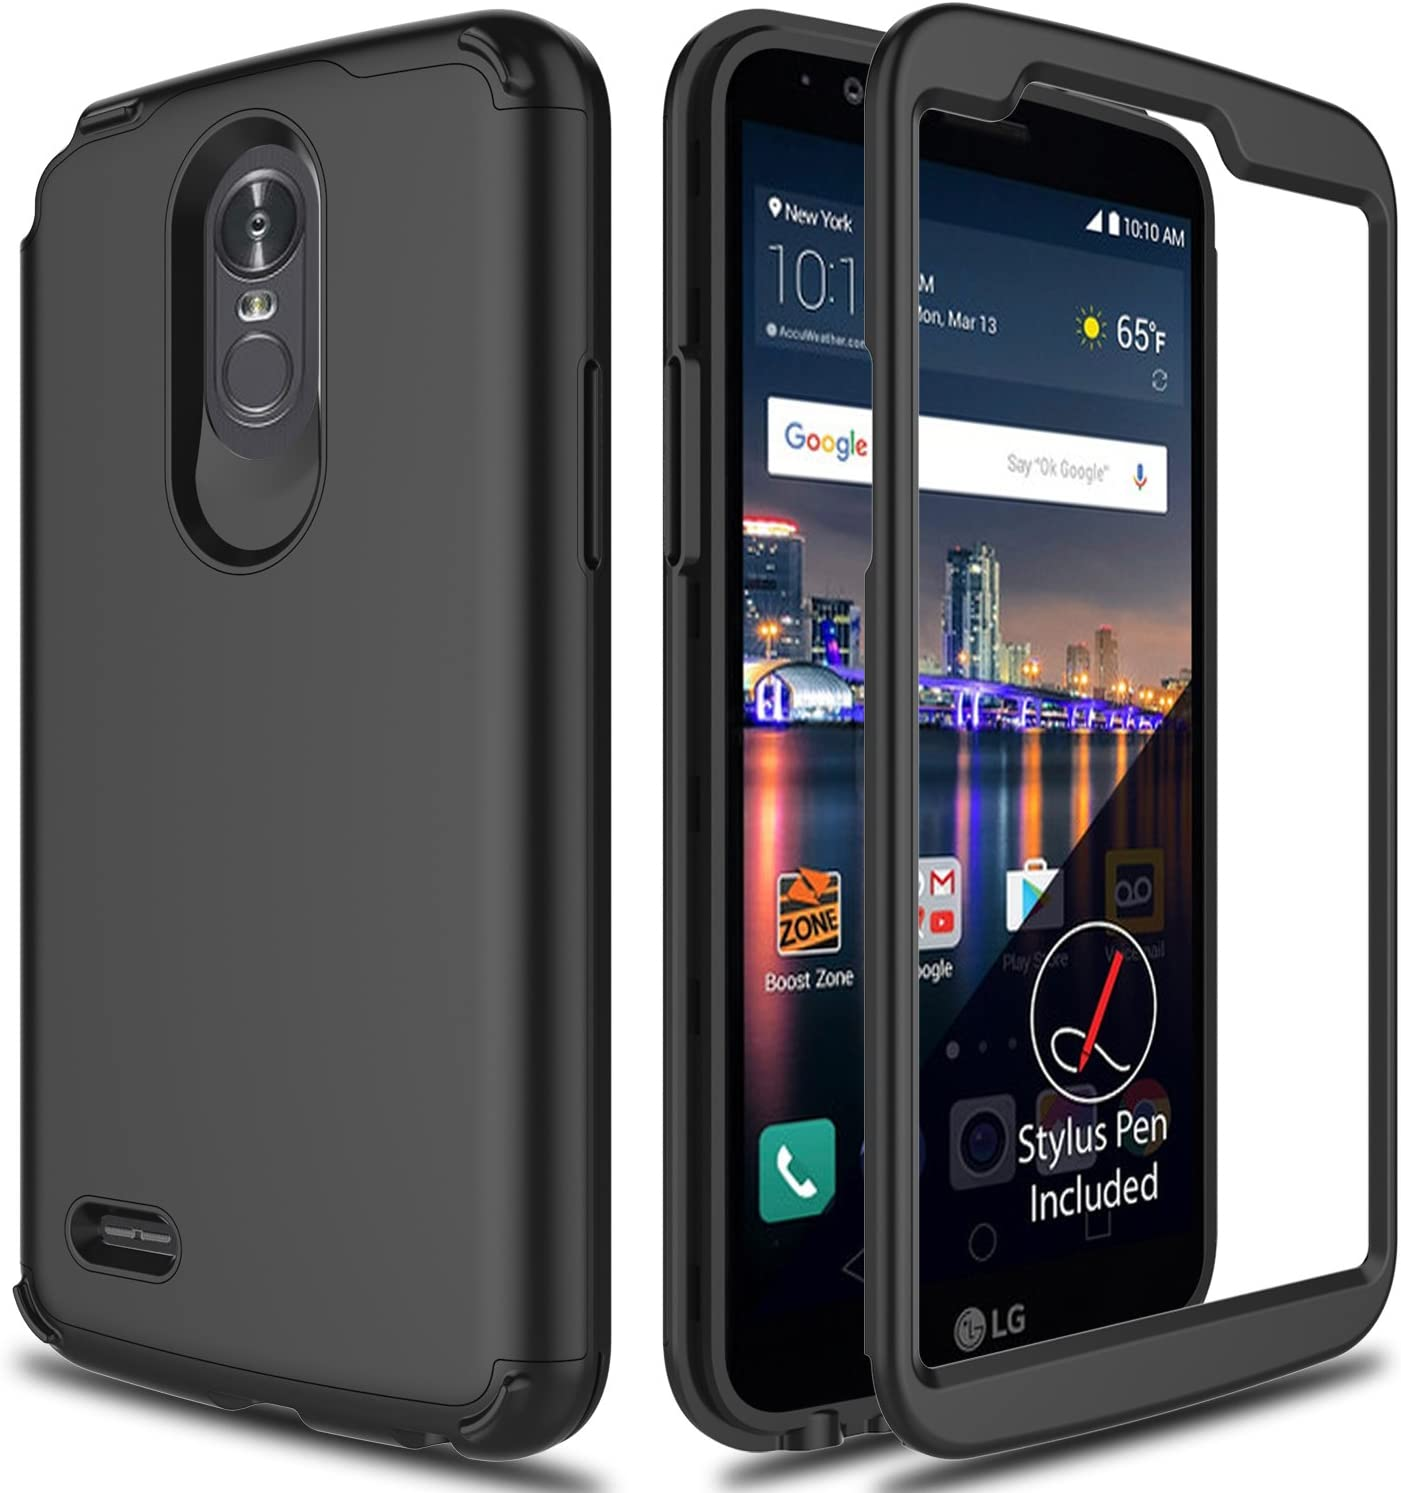 LG Stylo 3 Case, Stylo 3 Phone Case 2017 AMENQ 3 in 1 Heavy Duty Protection Absorb Impact Touch Silicone Rubber Smooth PC Cover [Black] for LG Stylo 3 LS777 -Matte Without Built in Screen Protector